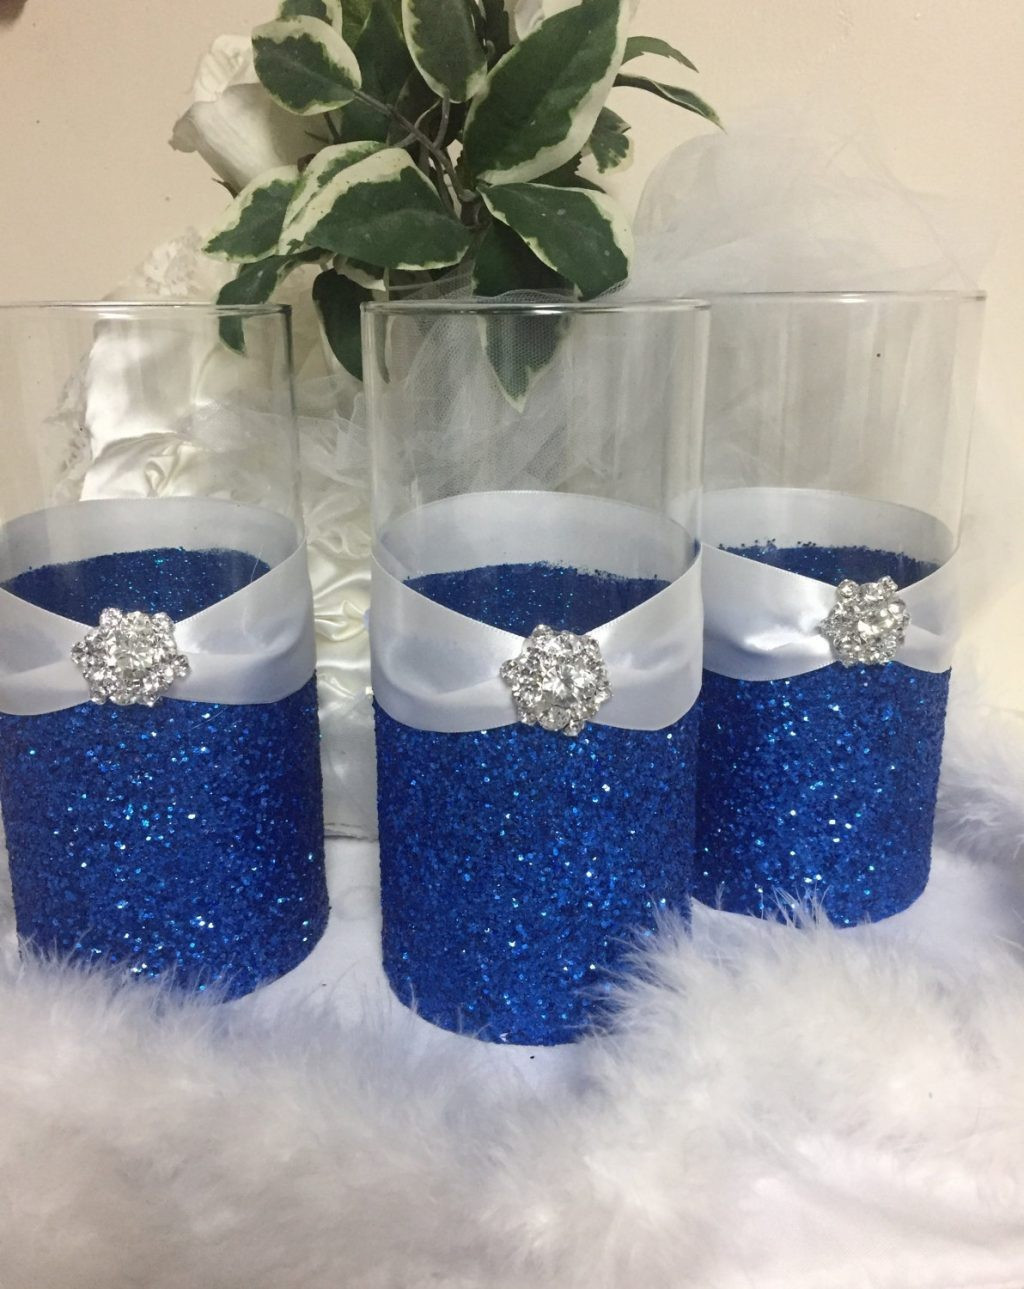 white glass vase of wedding decorations centerpieces beautiful tallh vases glitter vase intended for wedding decorations centerpieces beautiful tallh vases glitter vase centerpiece diy vasei 0d ball for design